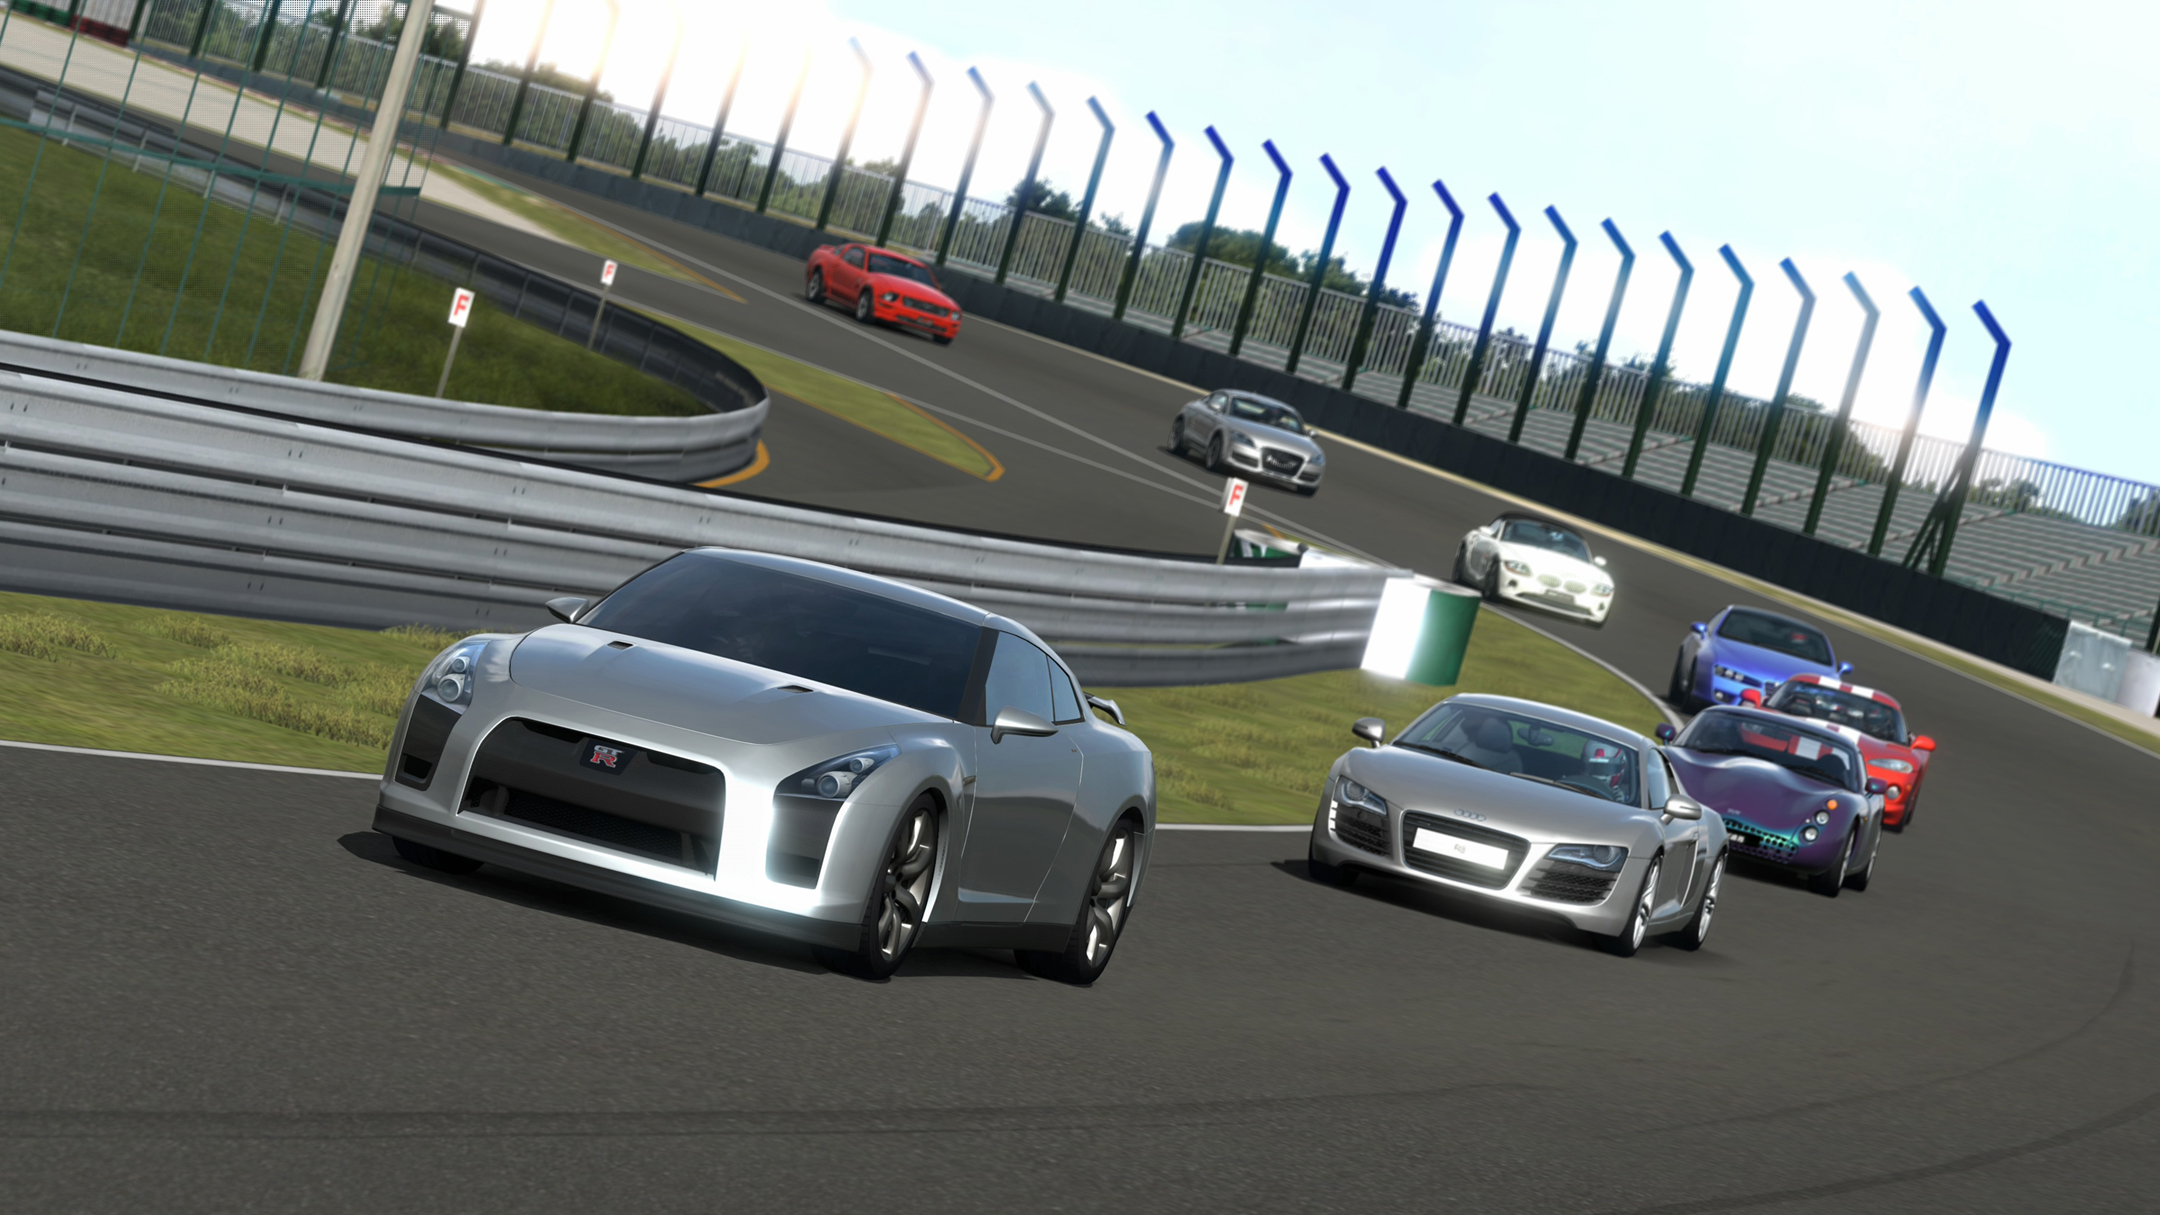 Gran turismo sony s best selling franchise